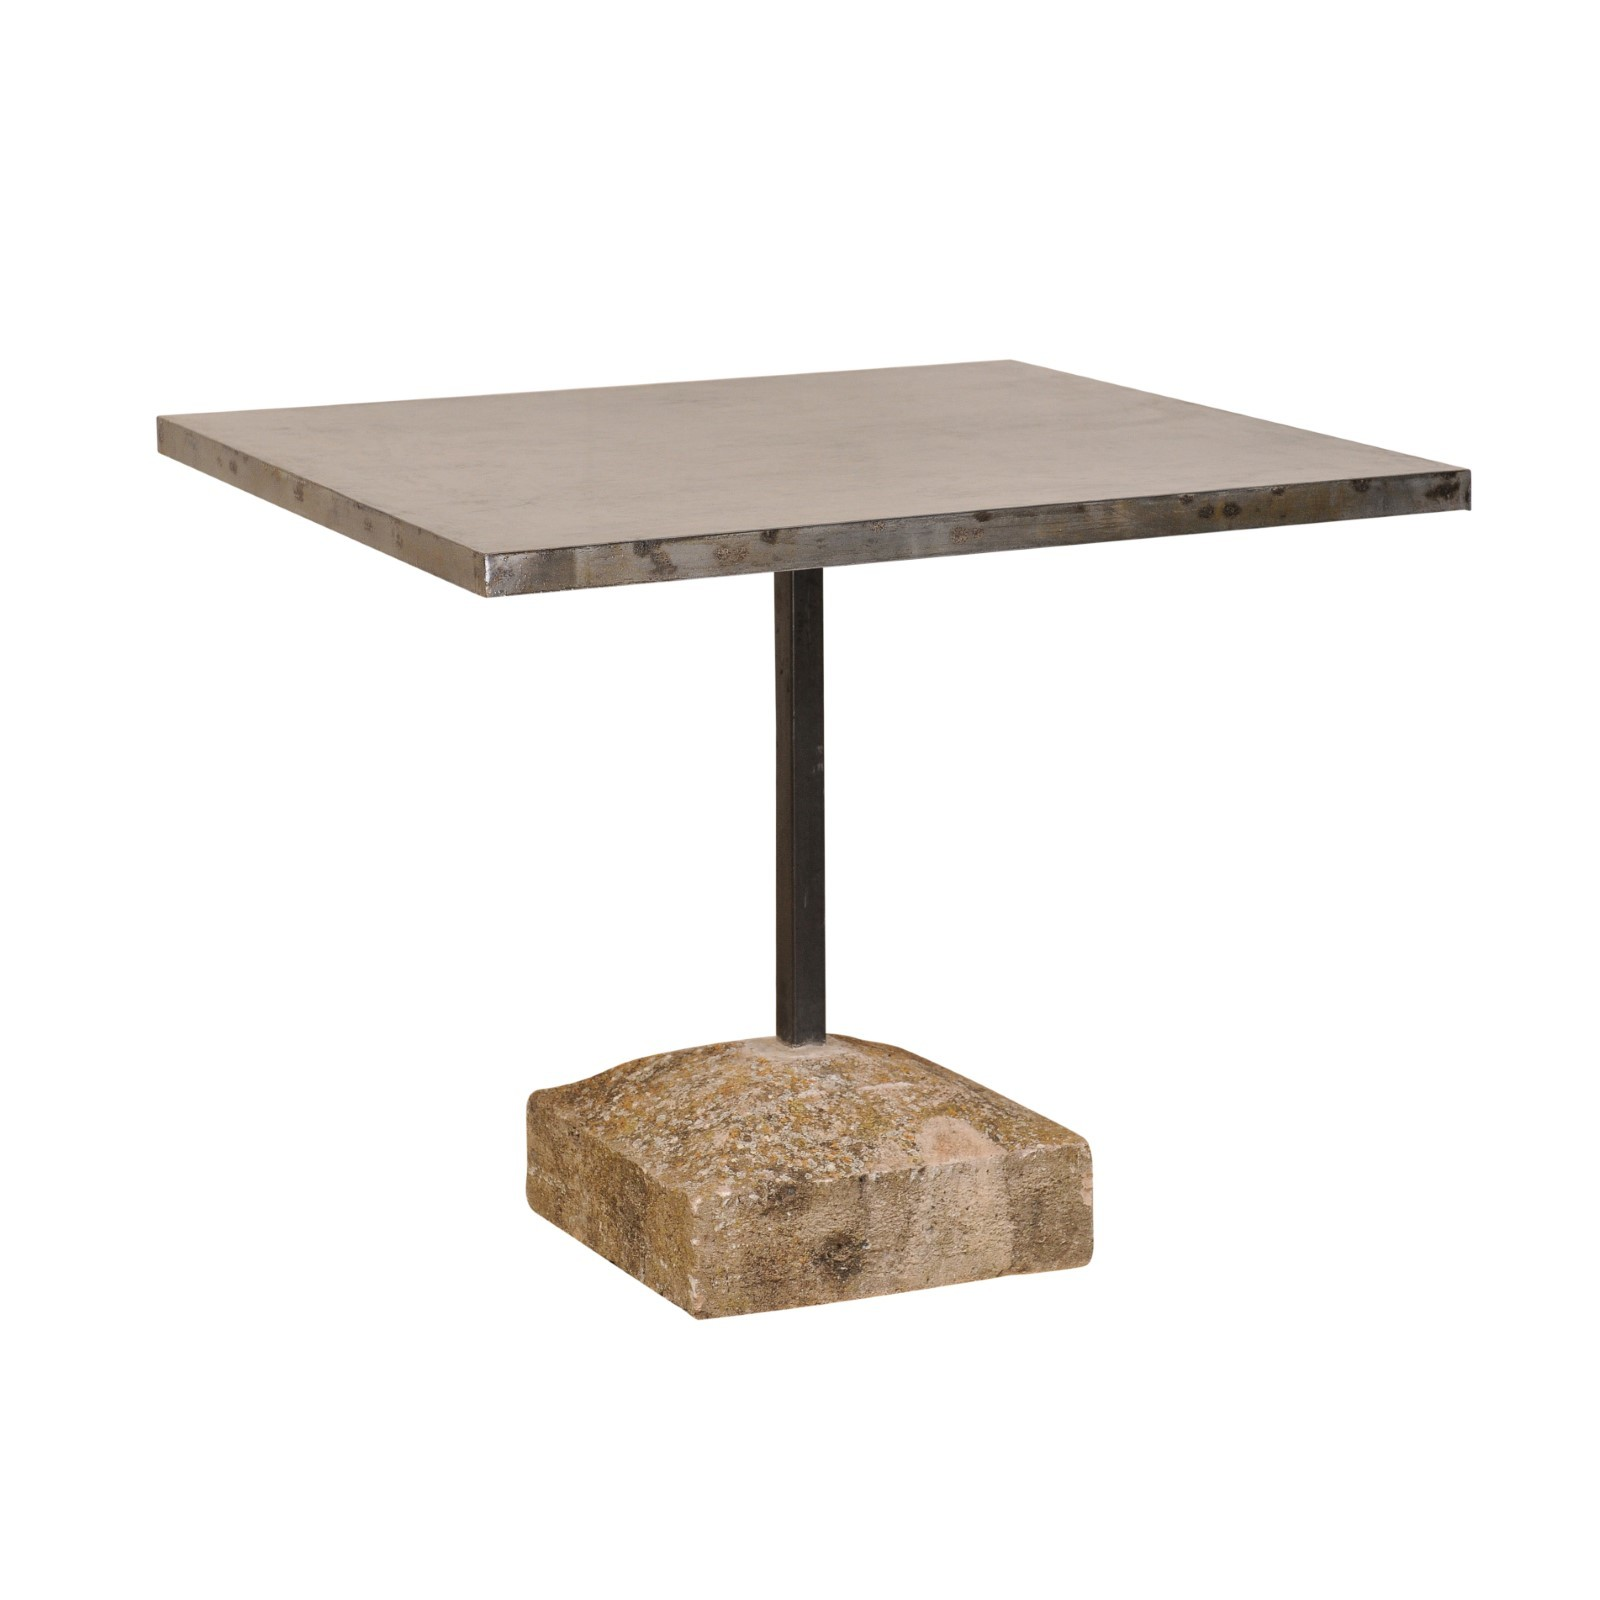 Square Iron Top Table w/Antique Stone Base